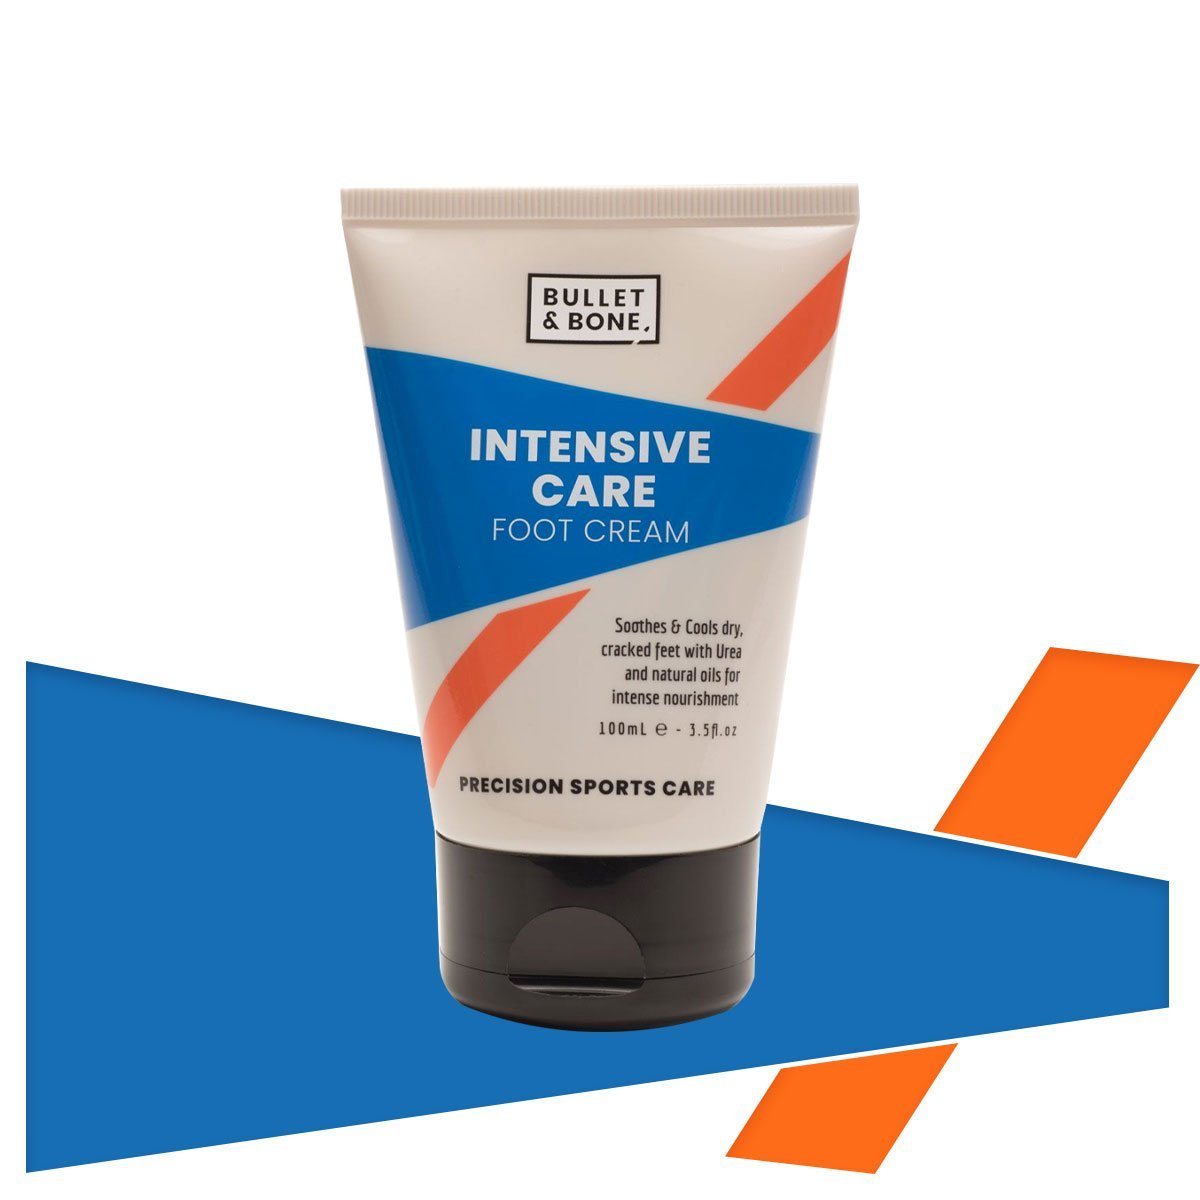 Bullet & Bone Intensive Care Foot Cream - www.therugbyshop.com